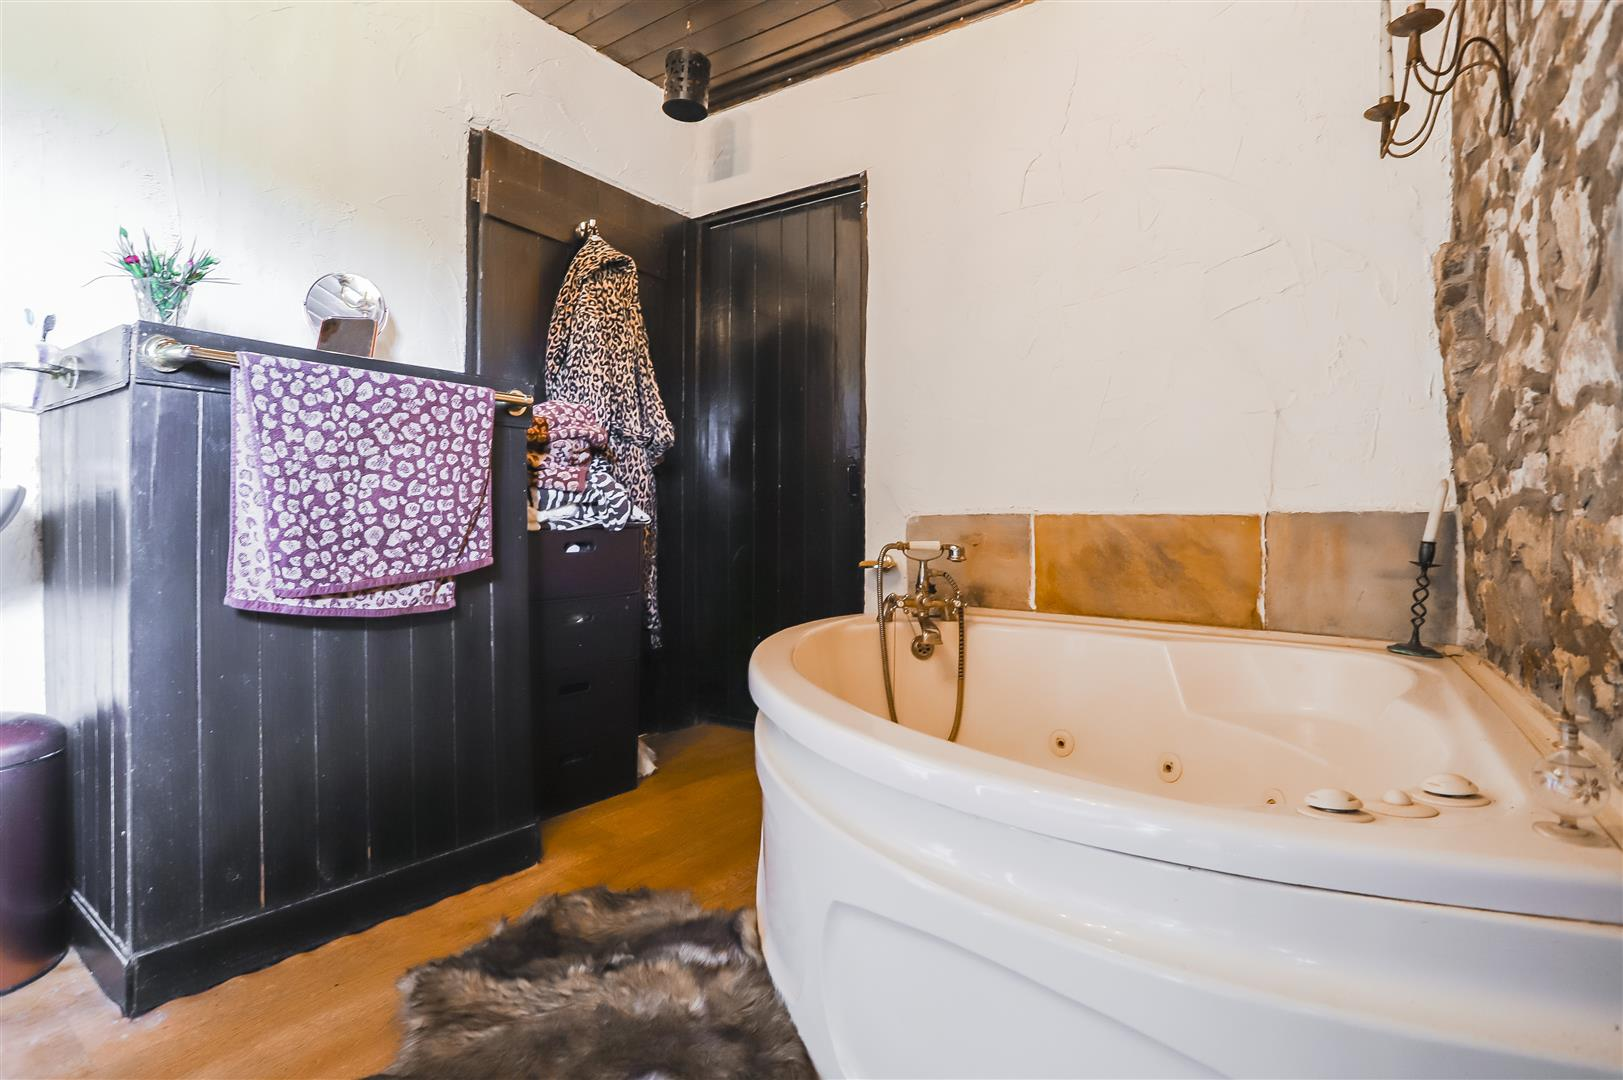 3 Bedroom House For Sale - Image 68